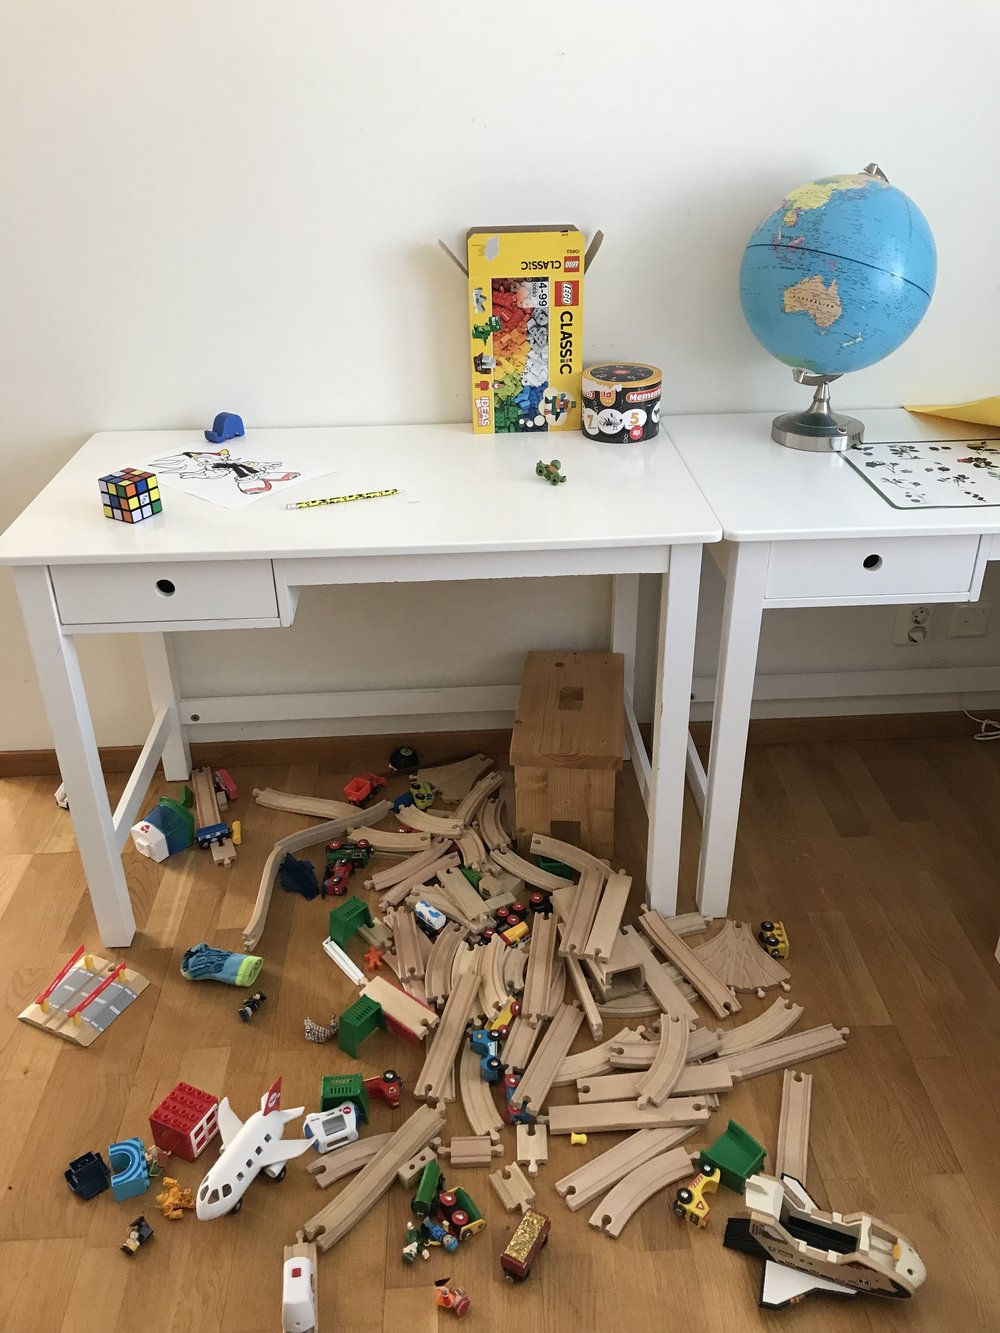 Why do the kids never put their toys back when they have finished playing?